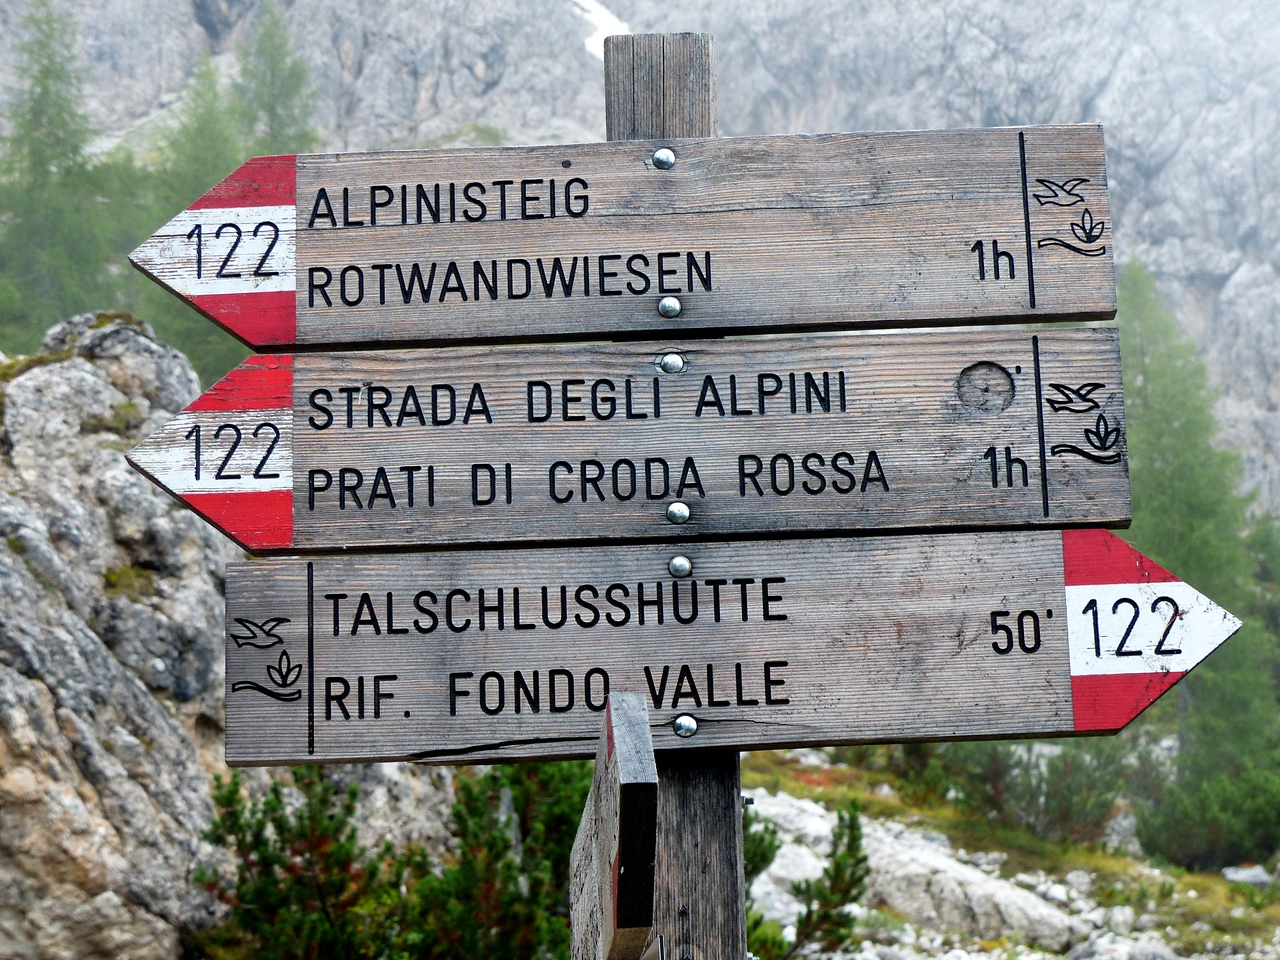 After arriving in the Dolomites, we planned a 5 day hike where we would stay in refugios. The trails were well marked. However, all the choices were confusing and it was  often hard to find the most direct route.